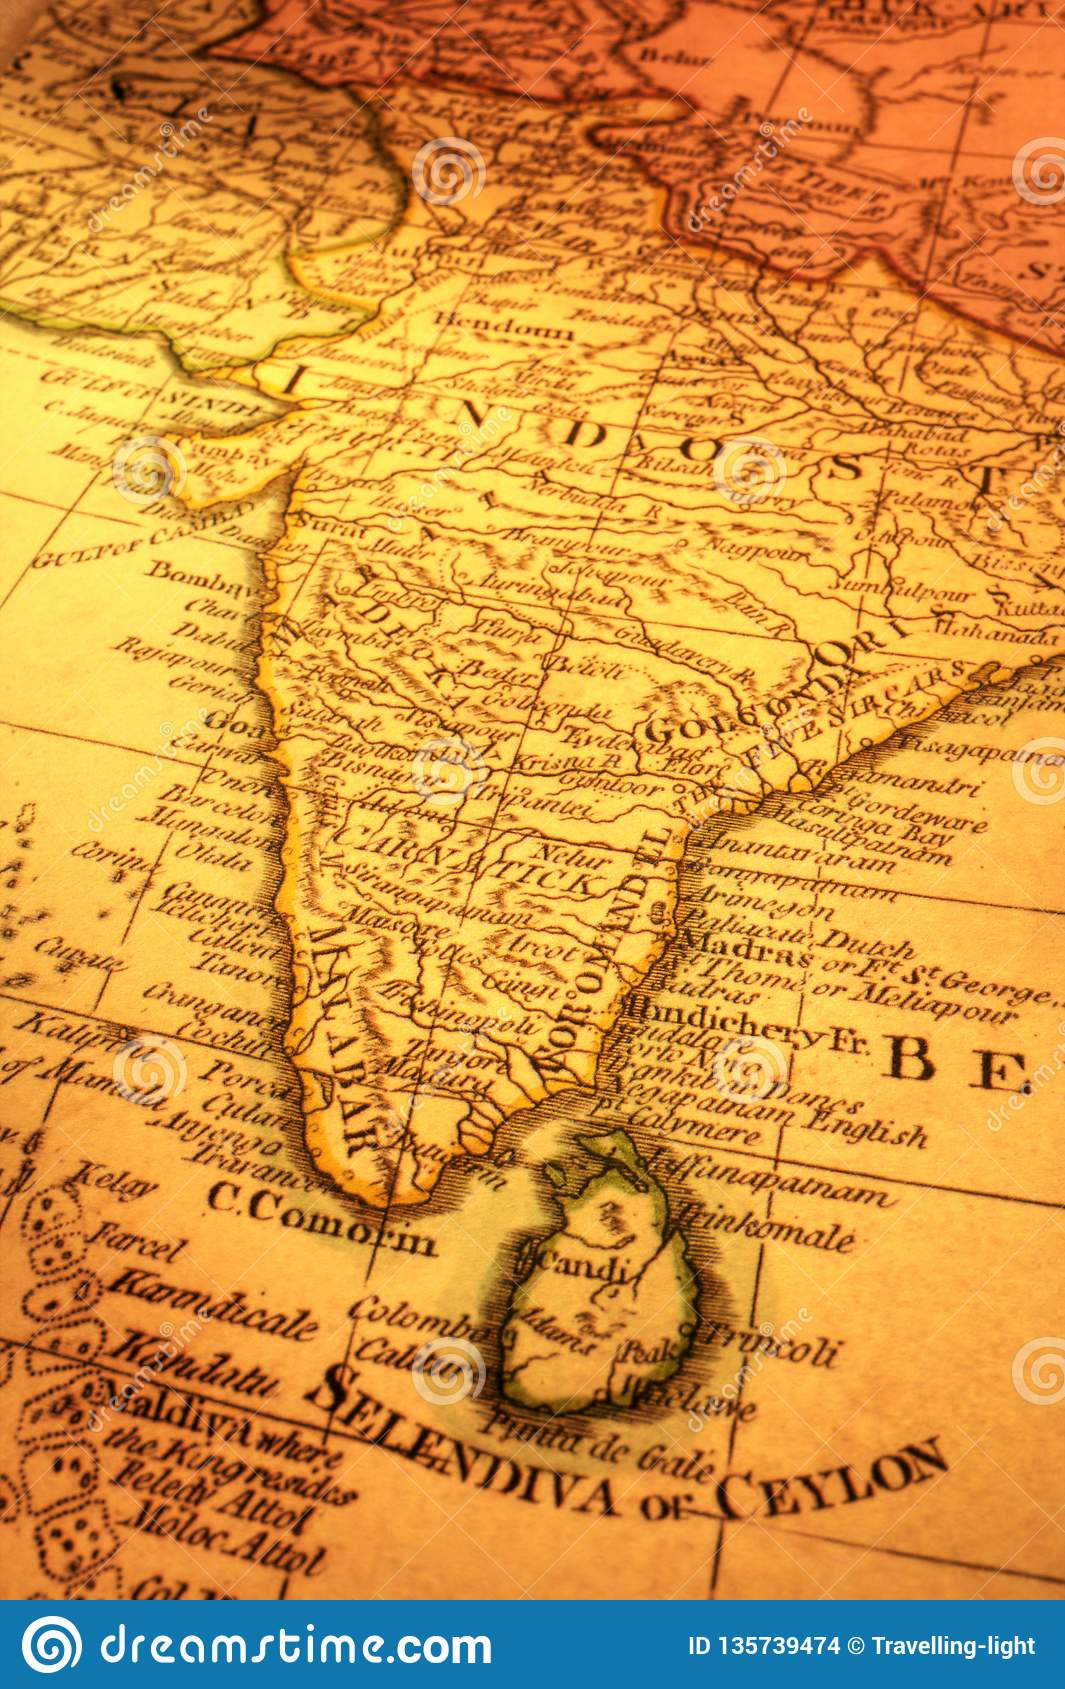 Madras India Map.Old Map Of India And Sri Lanka Stock Photo Image Of India Ancient